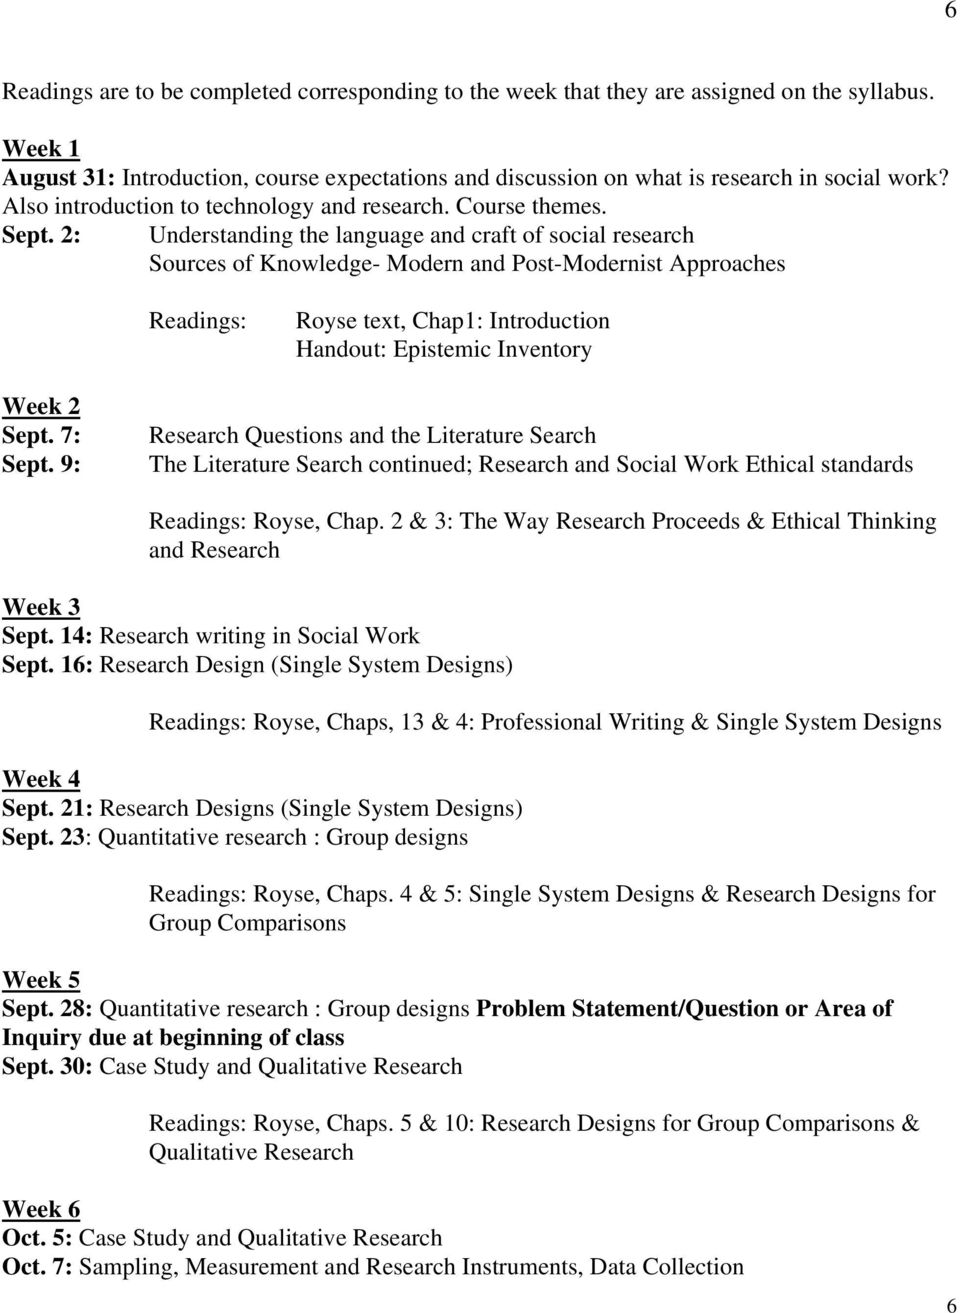 2: Understanding the language and craft of social research Sources of Knowledge- Modern and Post-Modernist Approaches Readings: Royse text, Chap1: Introduction Handout: Epistemic Inventory Week 2